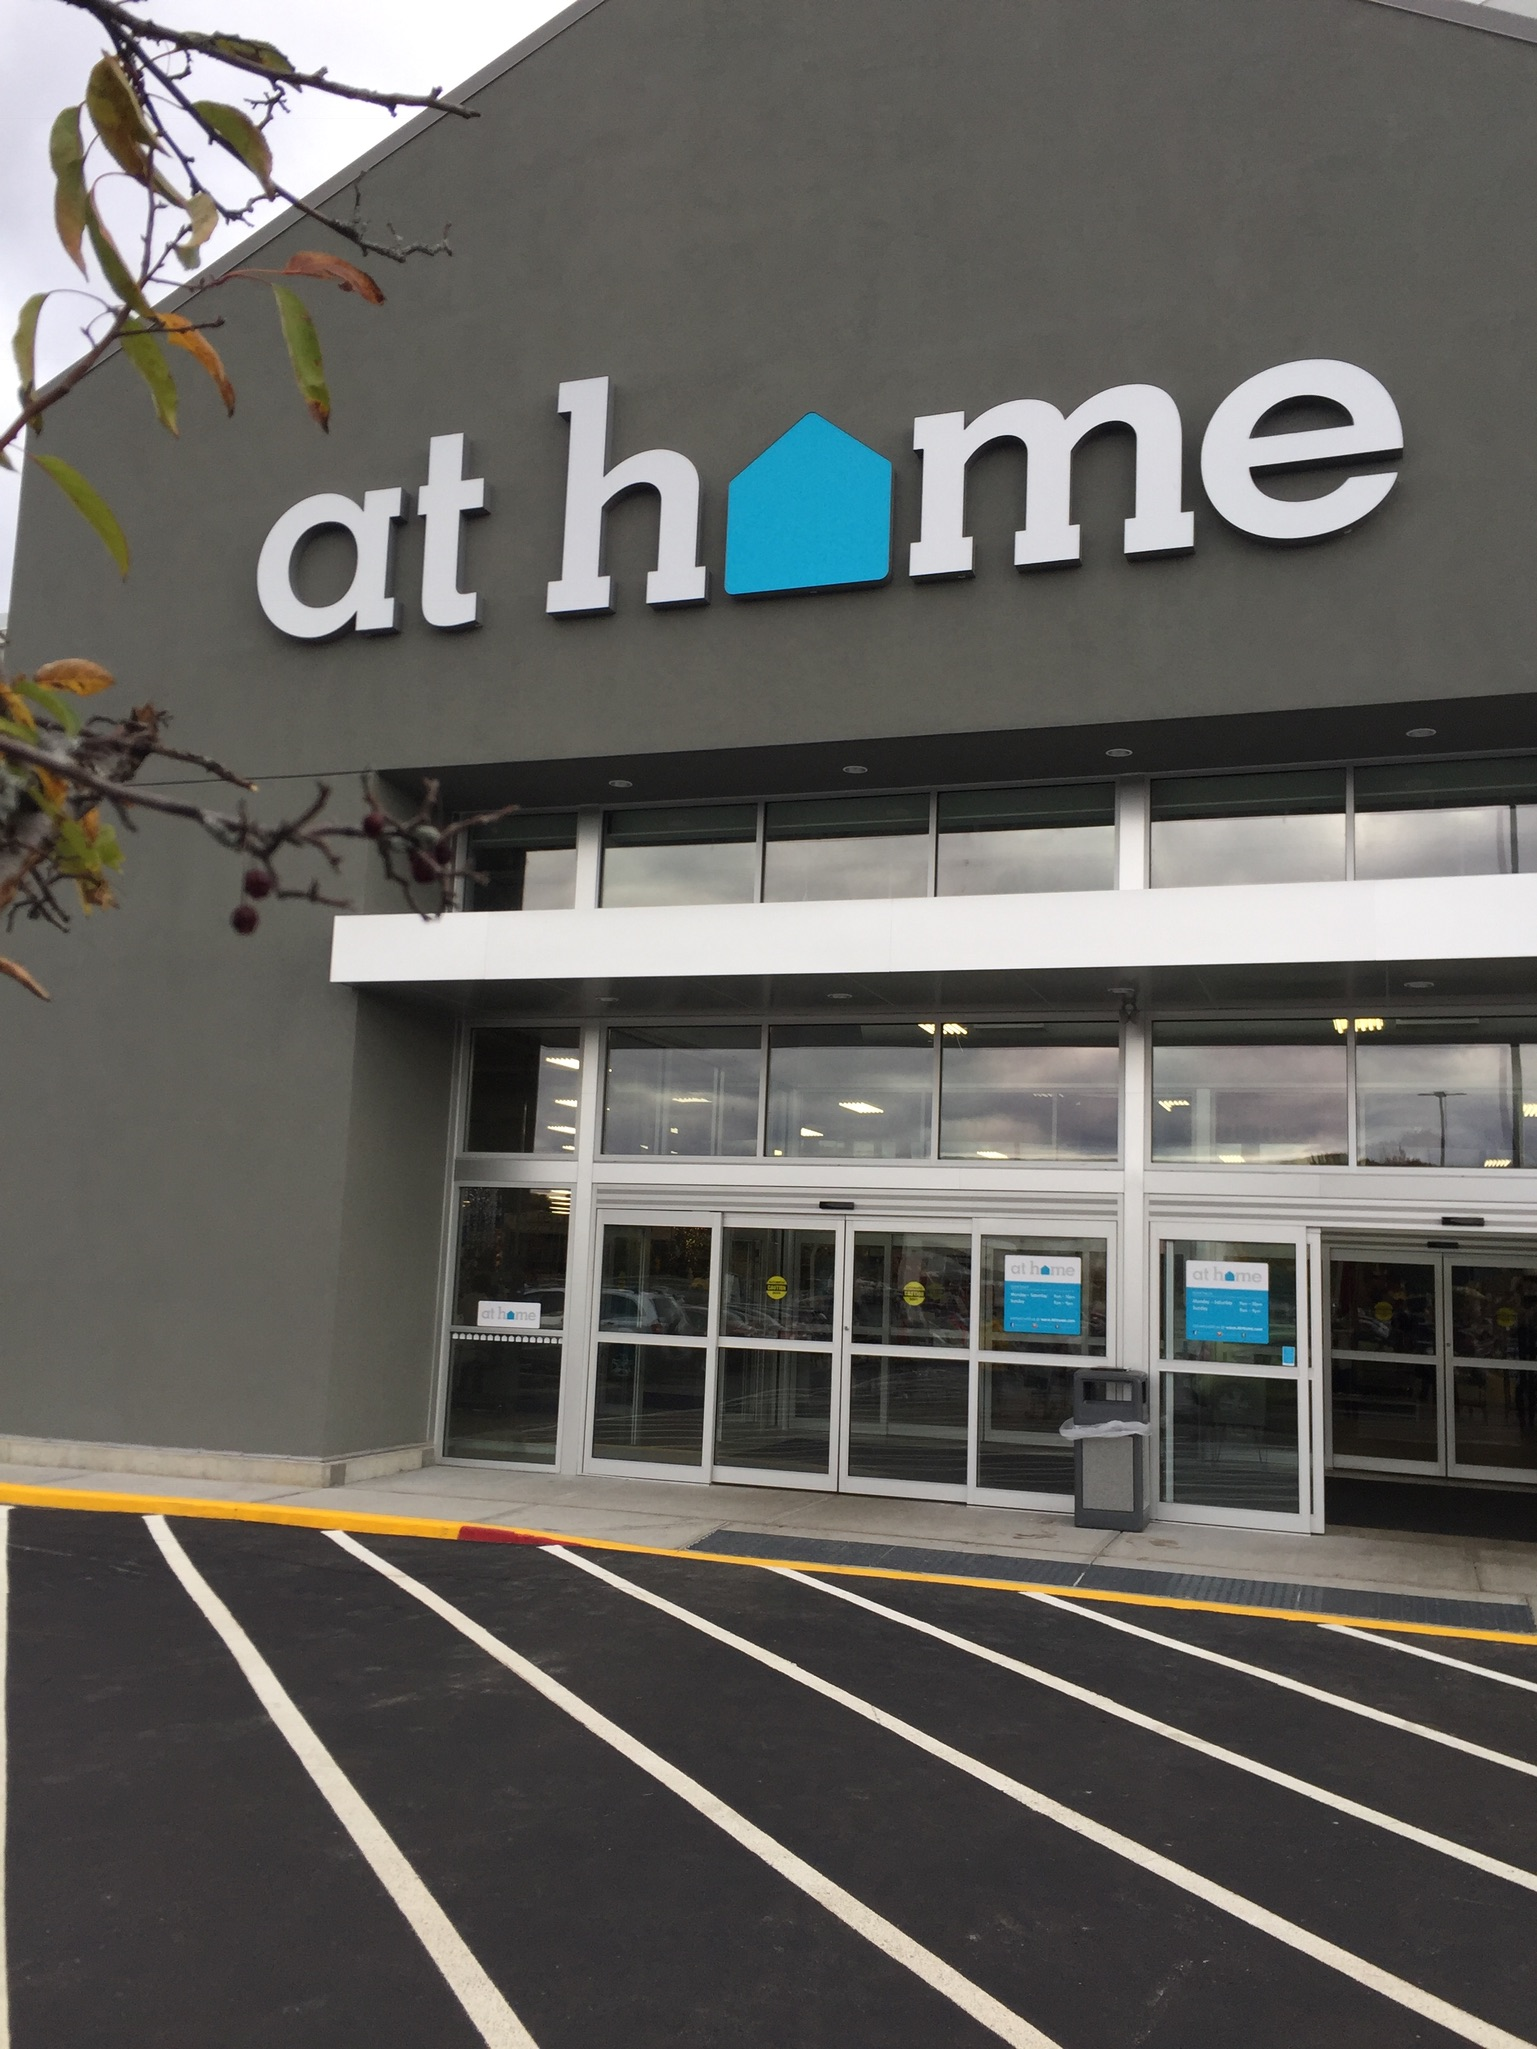 Home Decor Superstore provided by at home at home a national home decor superstore recently opened in burnsville Albany Has A Fun New Home Decor Superstore Called At Home The Store Is Located In Crossgates Commons